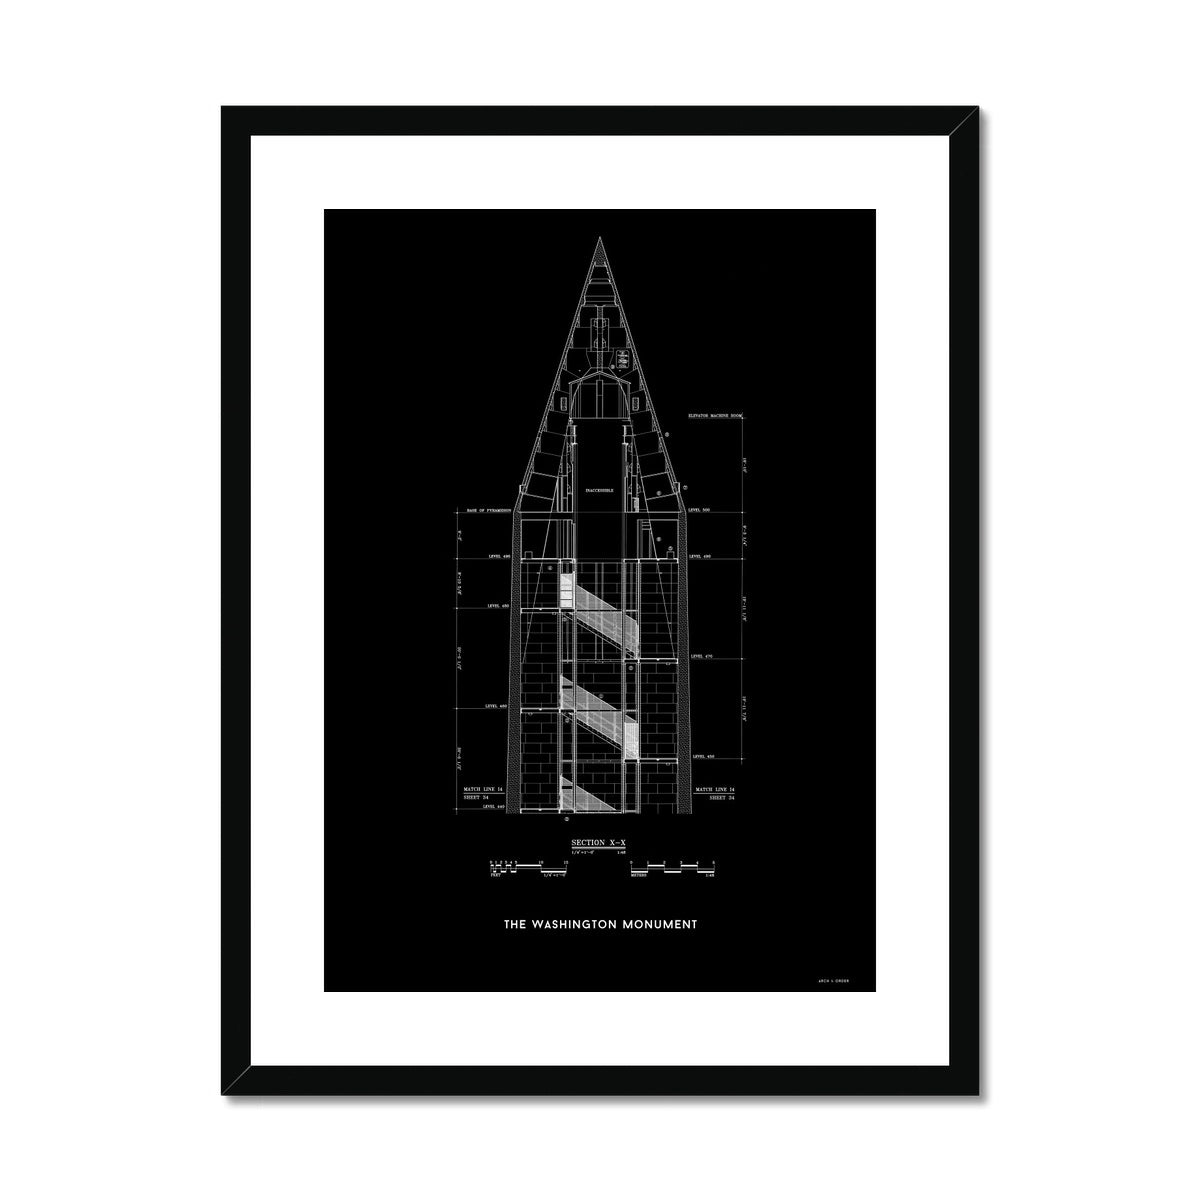 The Washington Monument Top Cross Section - Black -  Framed & Mounted Print